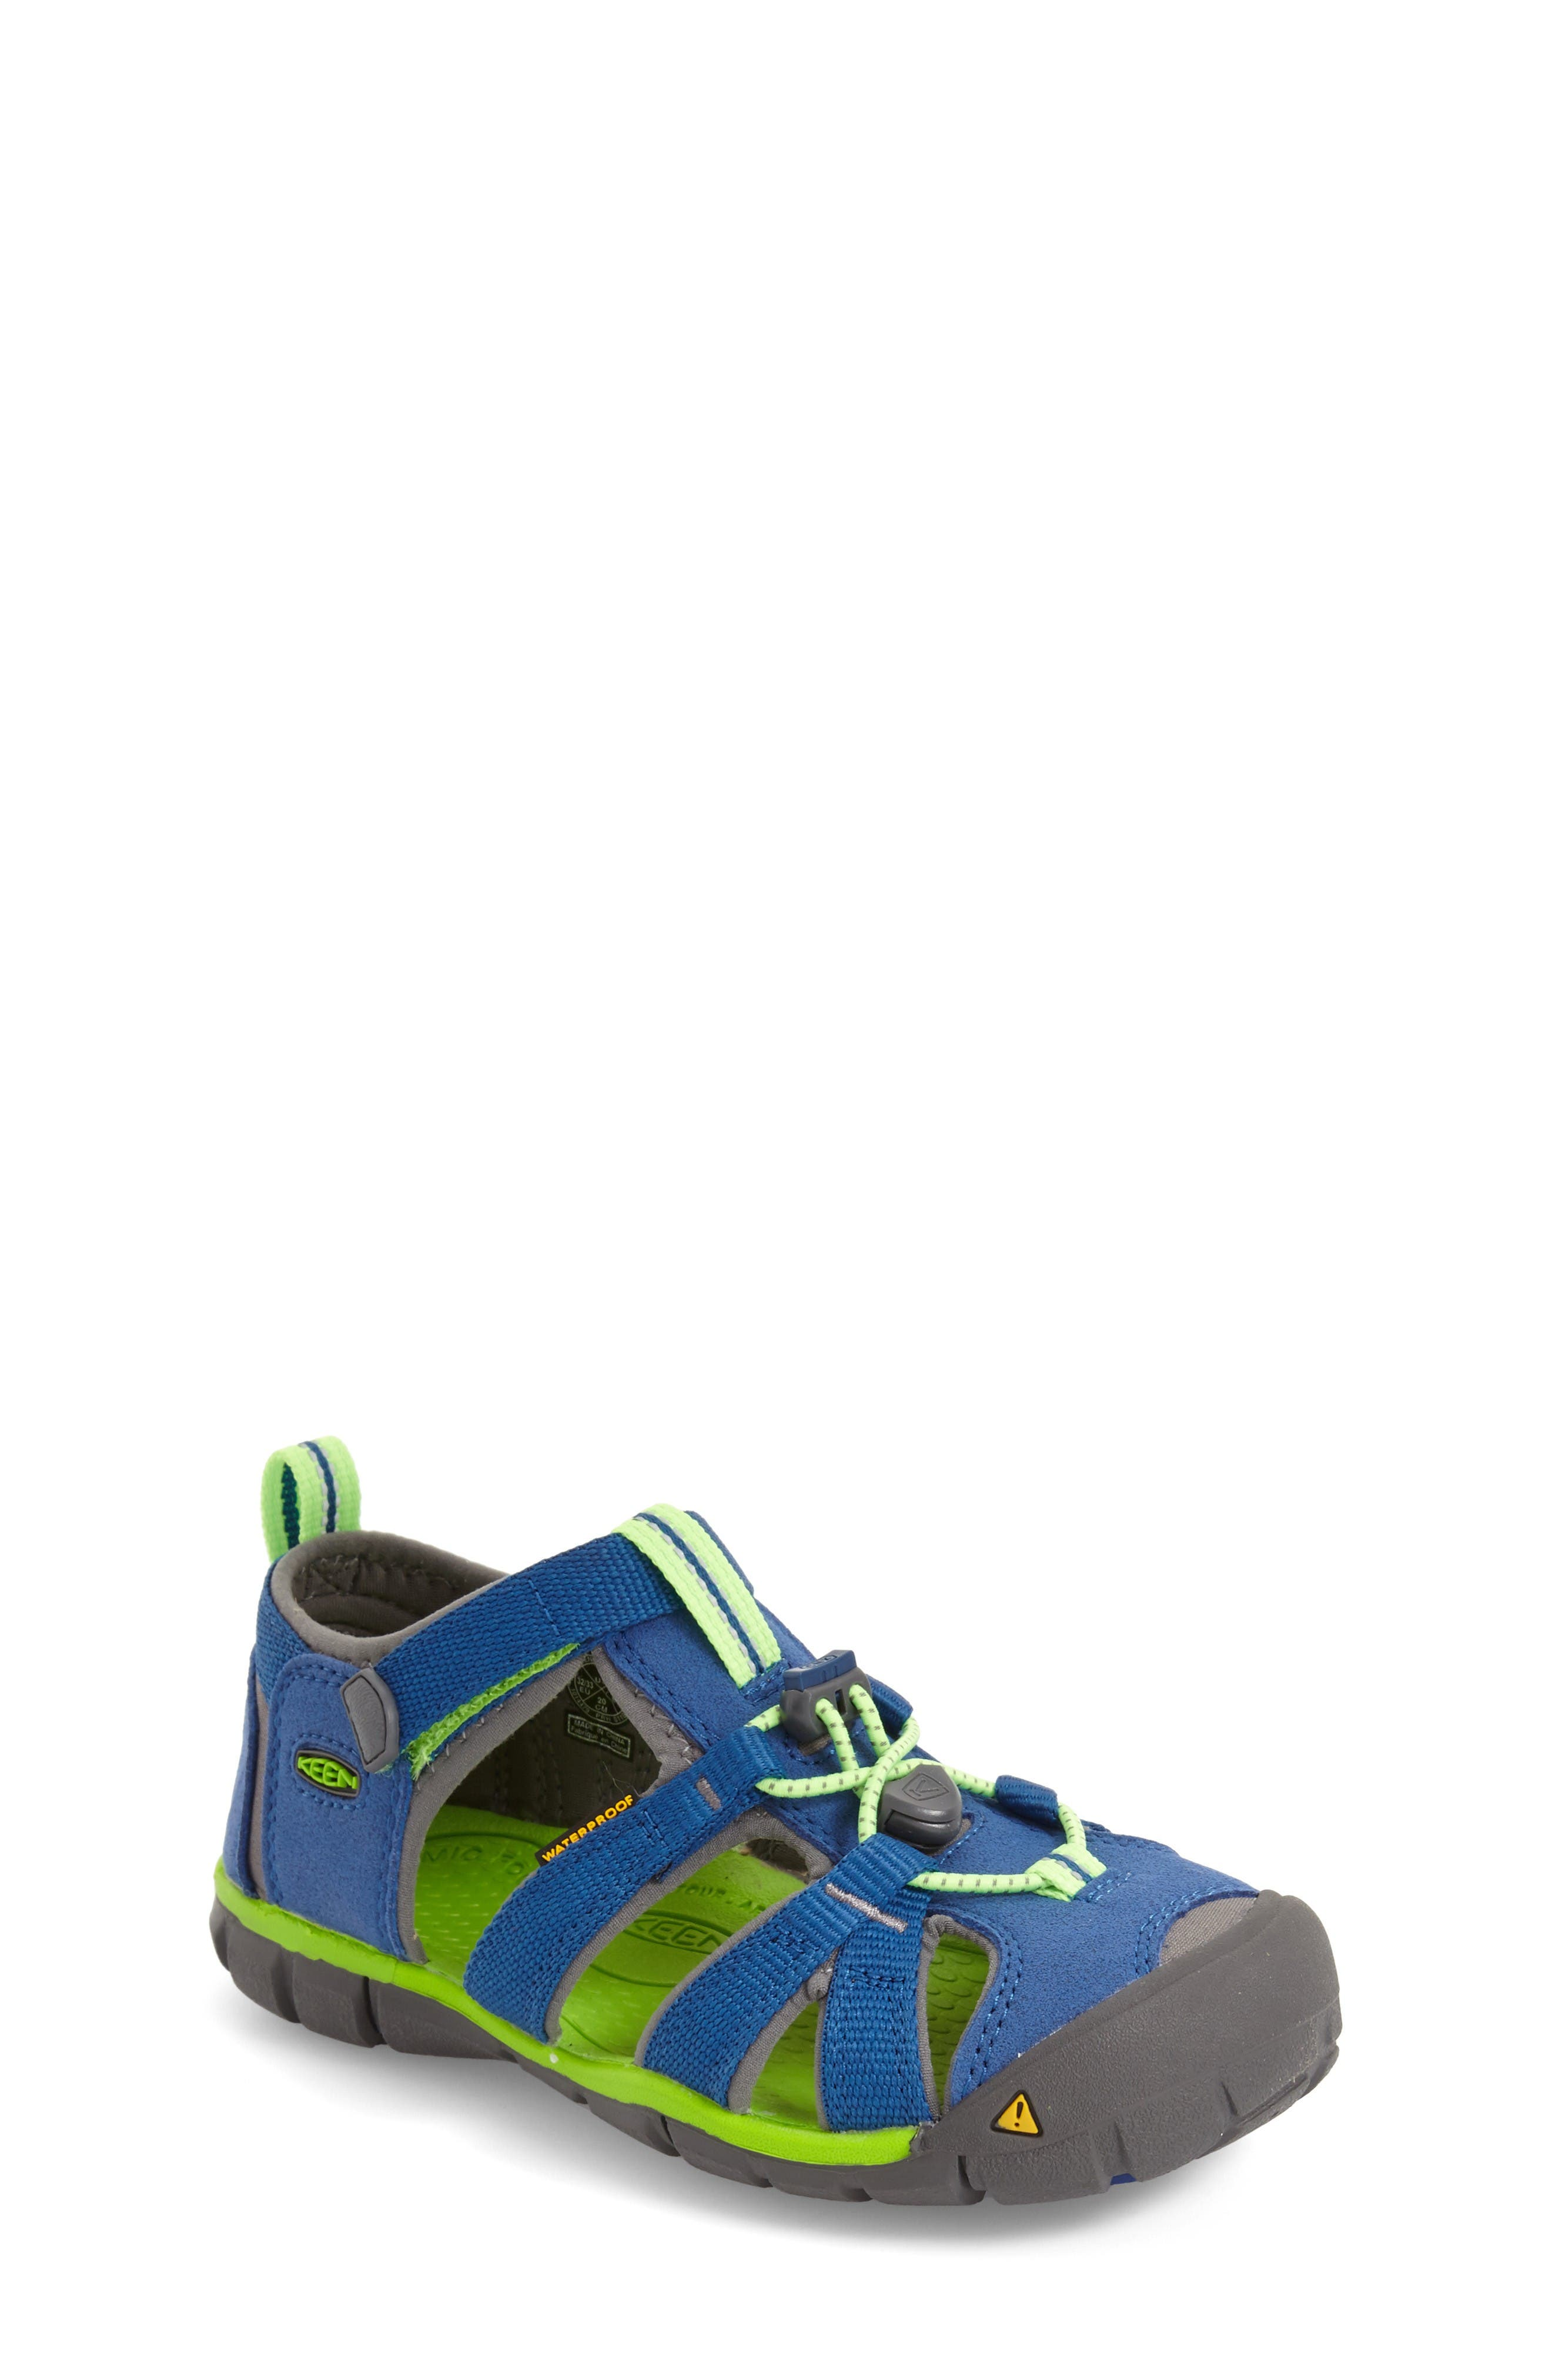 Alternate Image 1 Selected - Keen Seacamp II Water Friendly Sandal (Baby, Walker, Toddler, Little Kid & Big Kid)